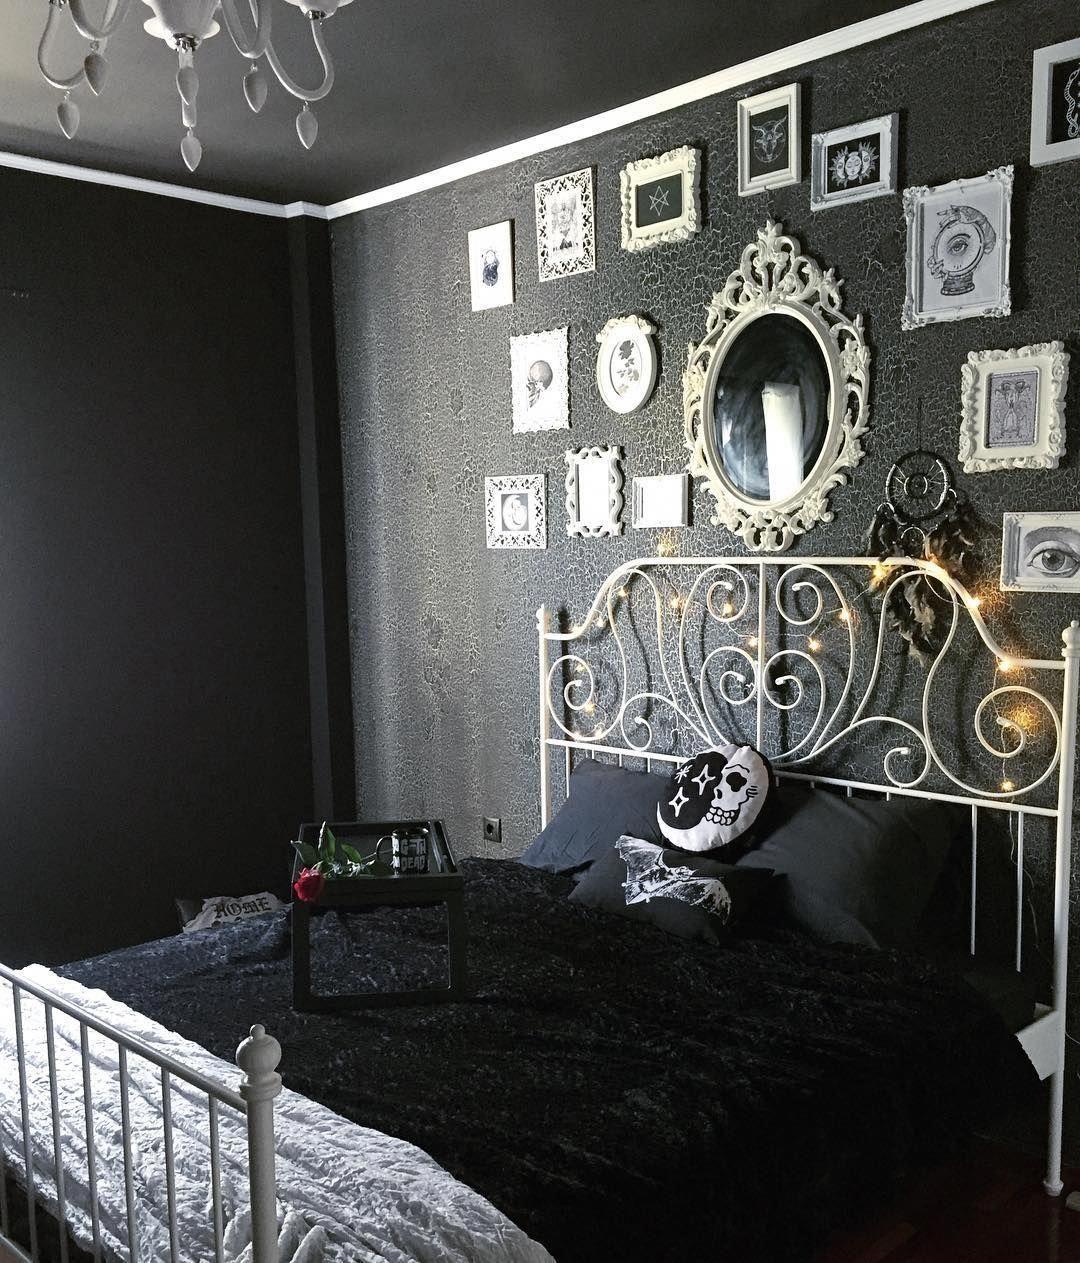 Happy Halloween I Wanted Black Walls And White Everythung Just To Give A Dreamy Floating Sense To My Bedroom Ya Likey Yay Or Nay Arredamento Camera